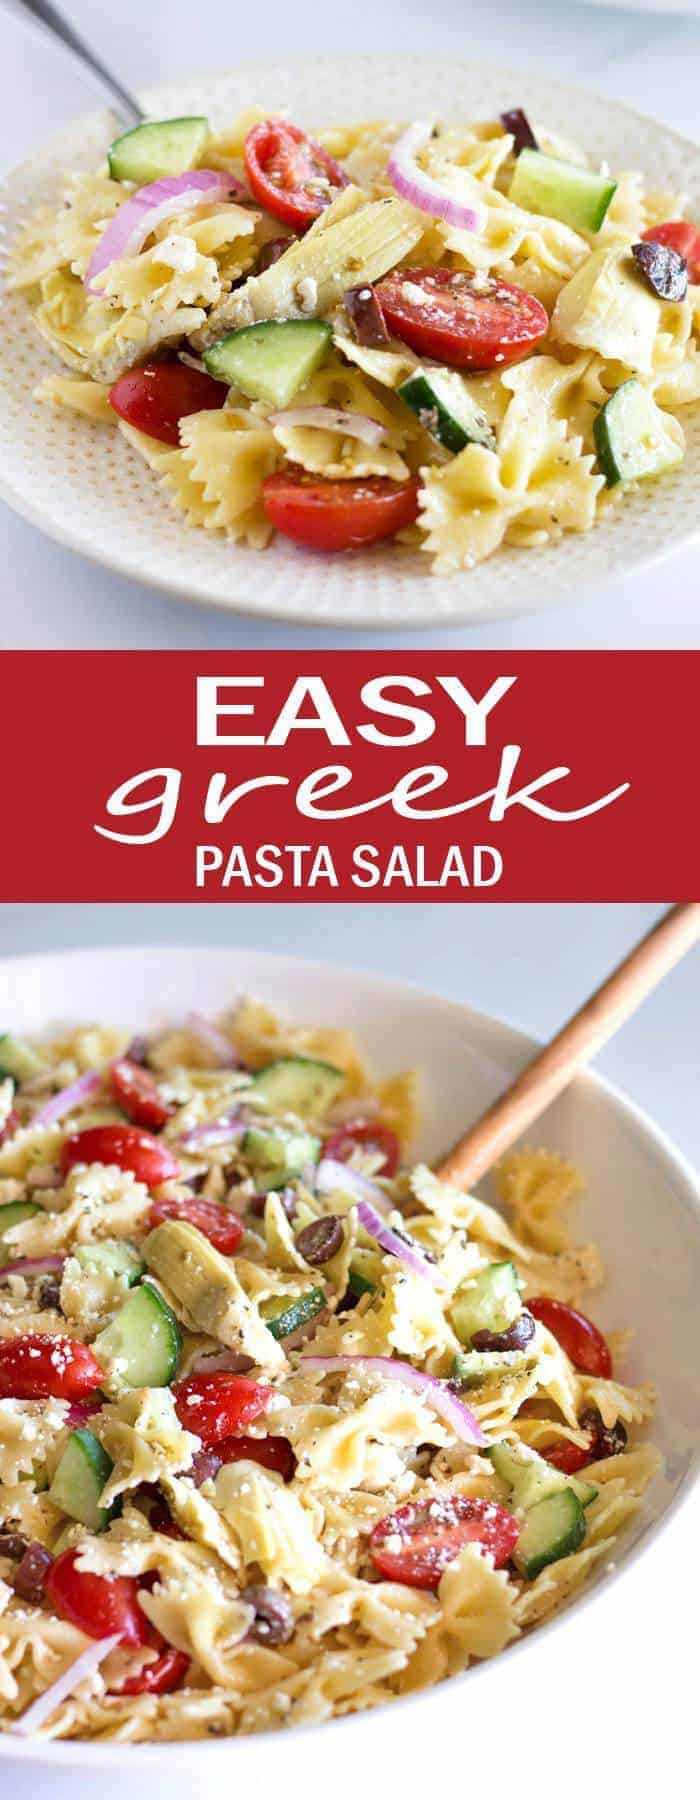 Make this Easy Greek Pasta Salad for your next summer BBQ, or make it a quick weeknight meal by adding chicken, shrimp or steak!